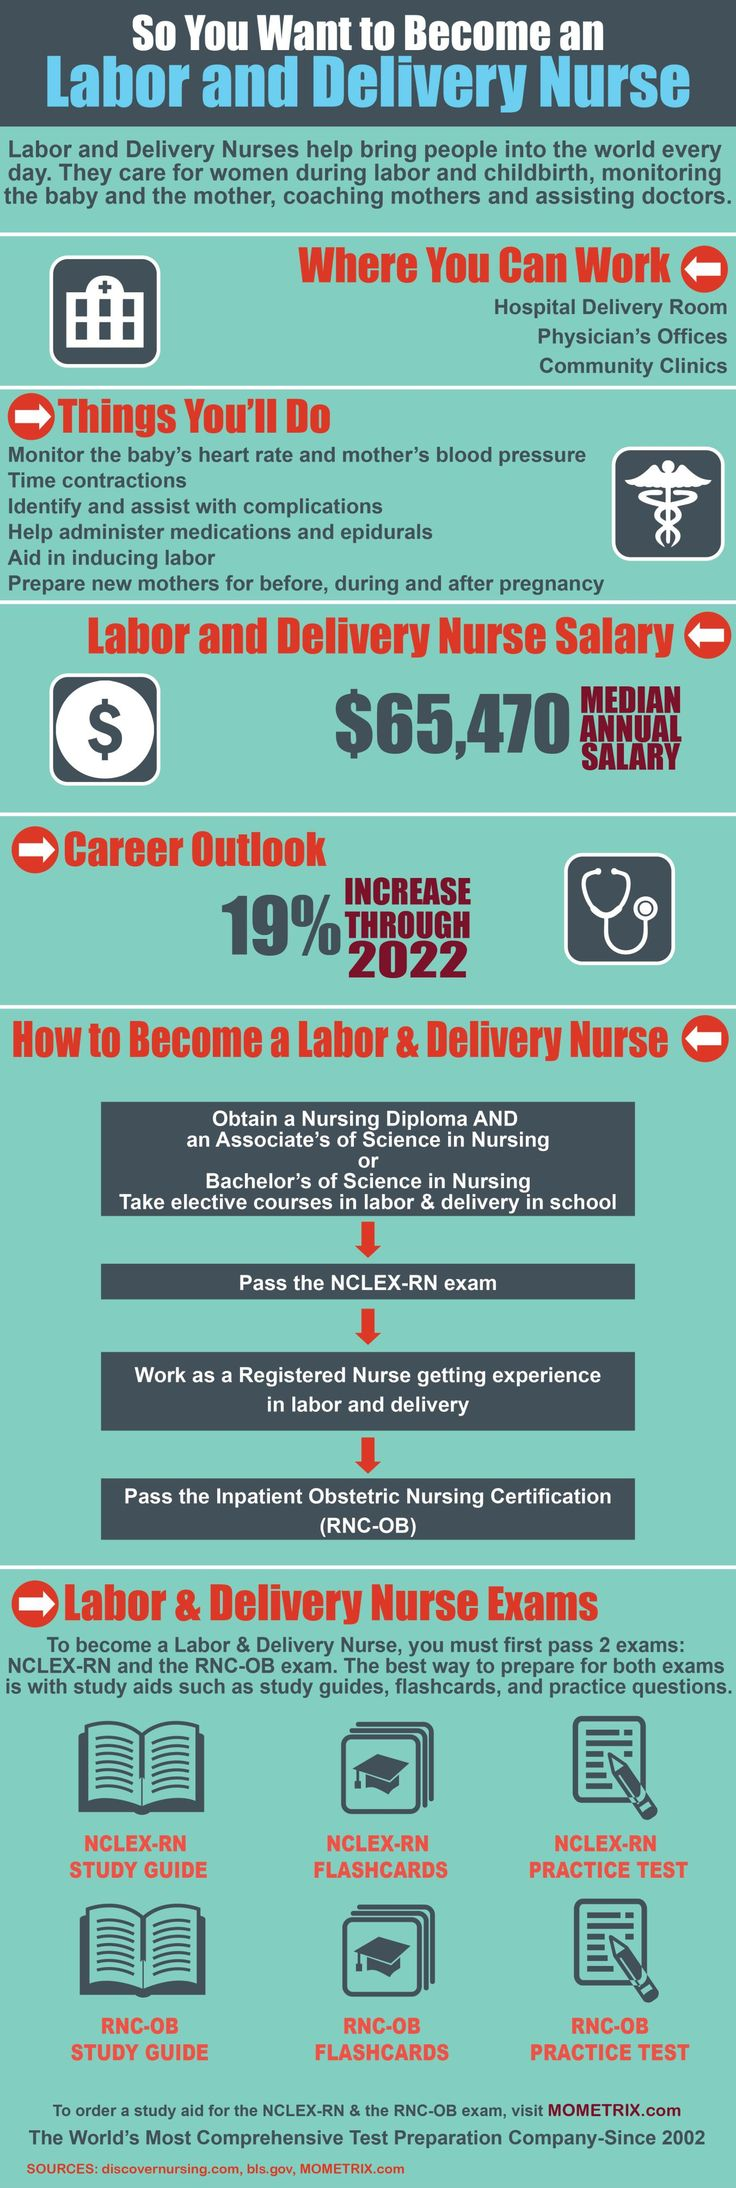 best ideas about becoming a nurse becoming a so you want to become a labor and delivery nurse